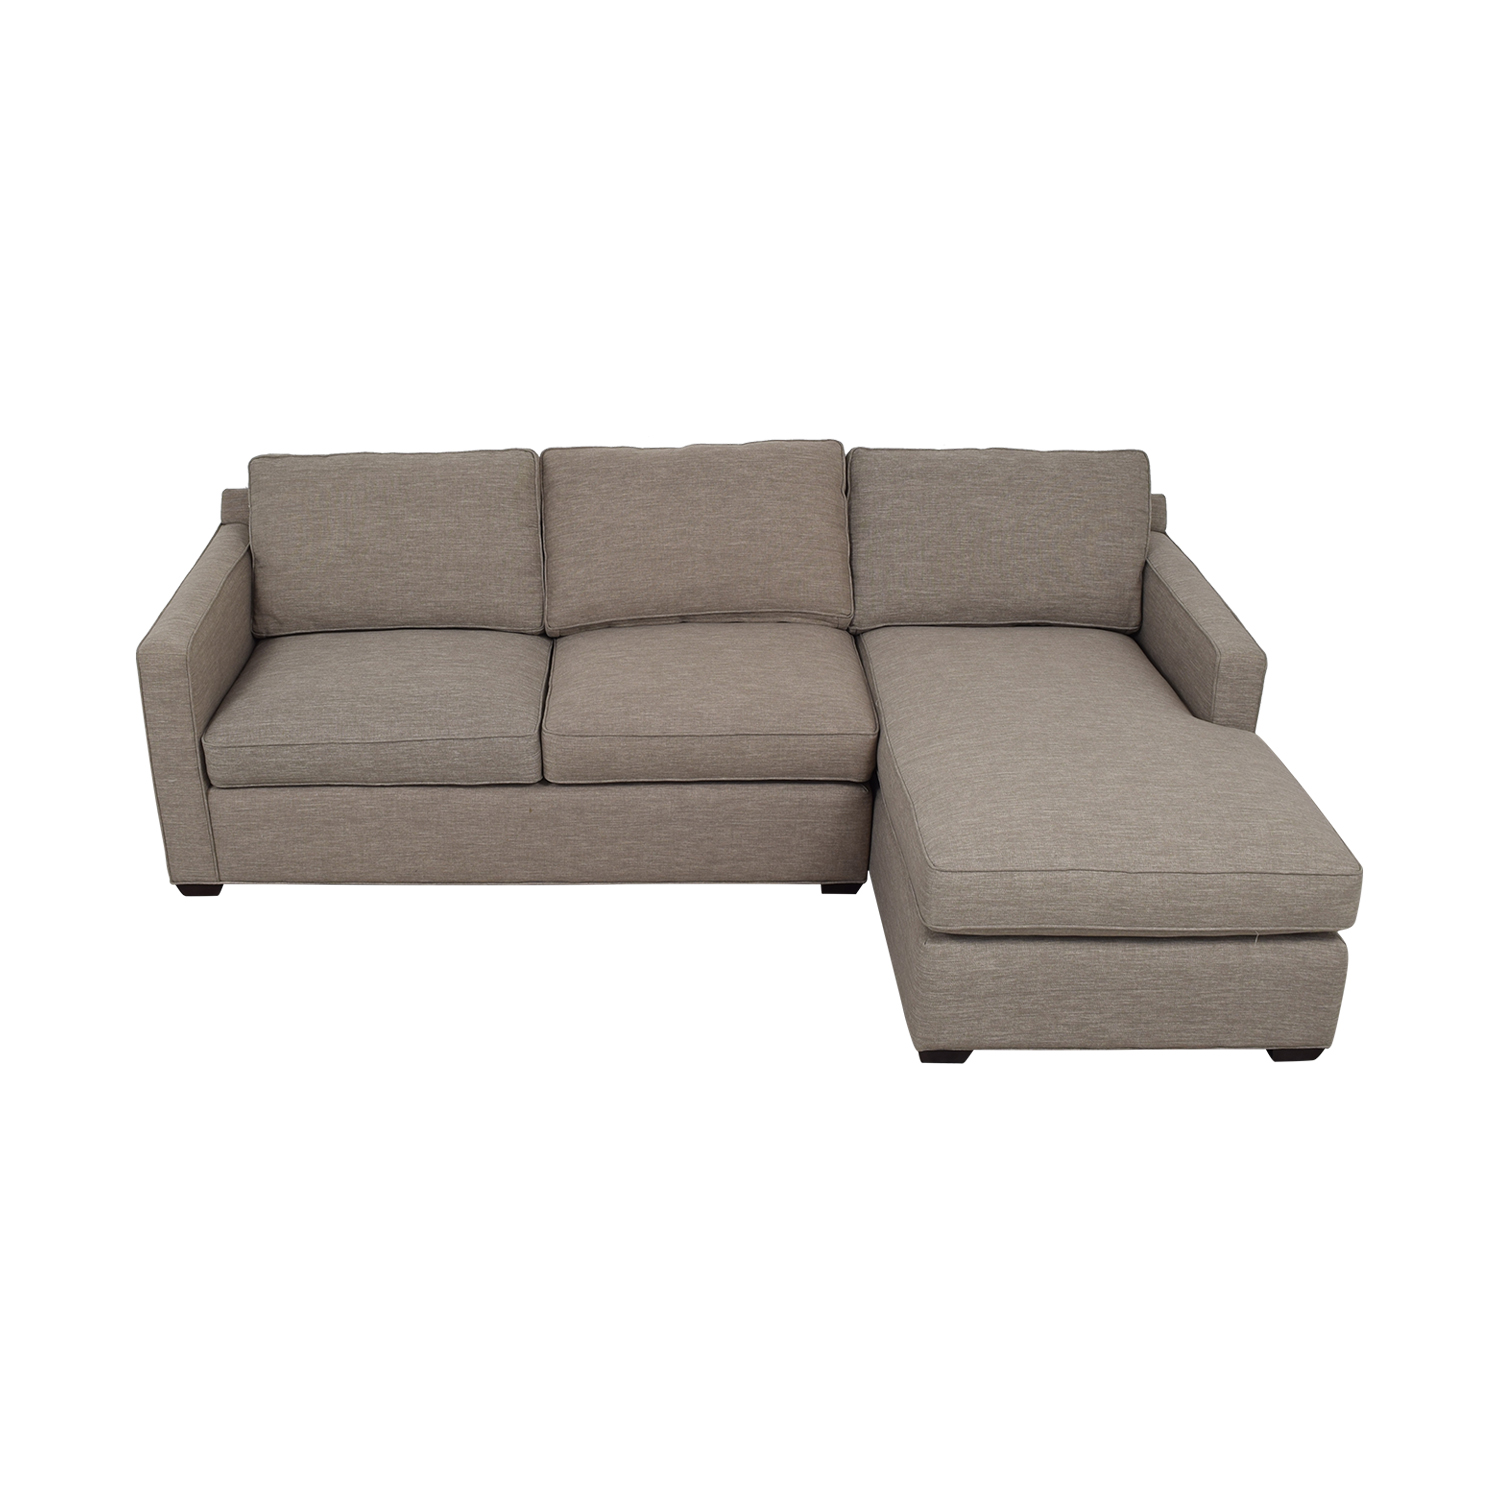 buy Crate & Barrel Crate & Barrel Grey Chaise Sectional online